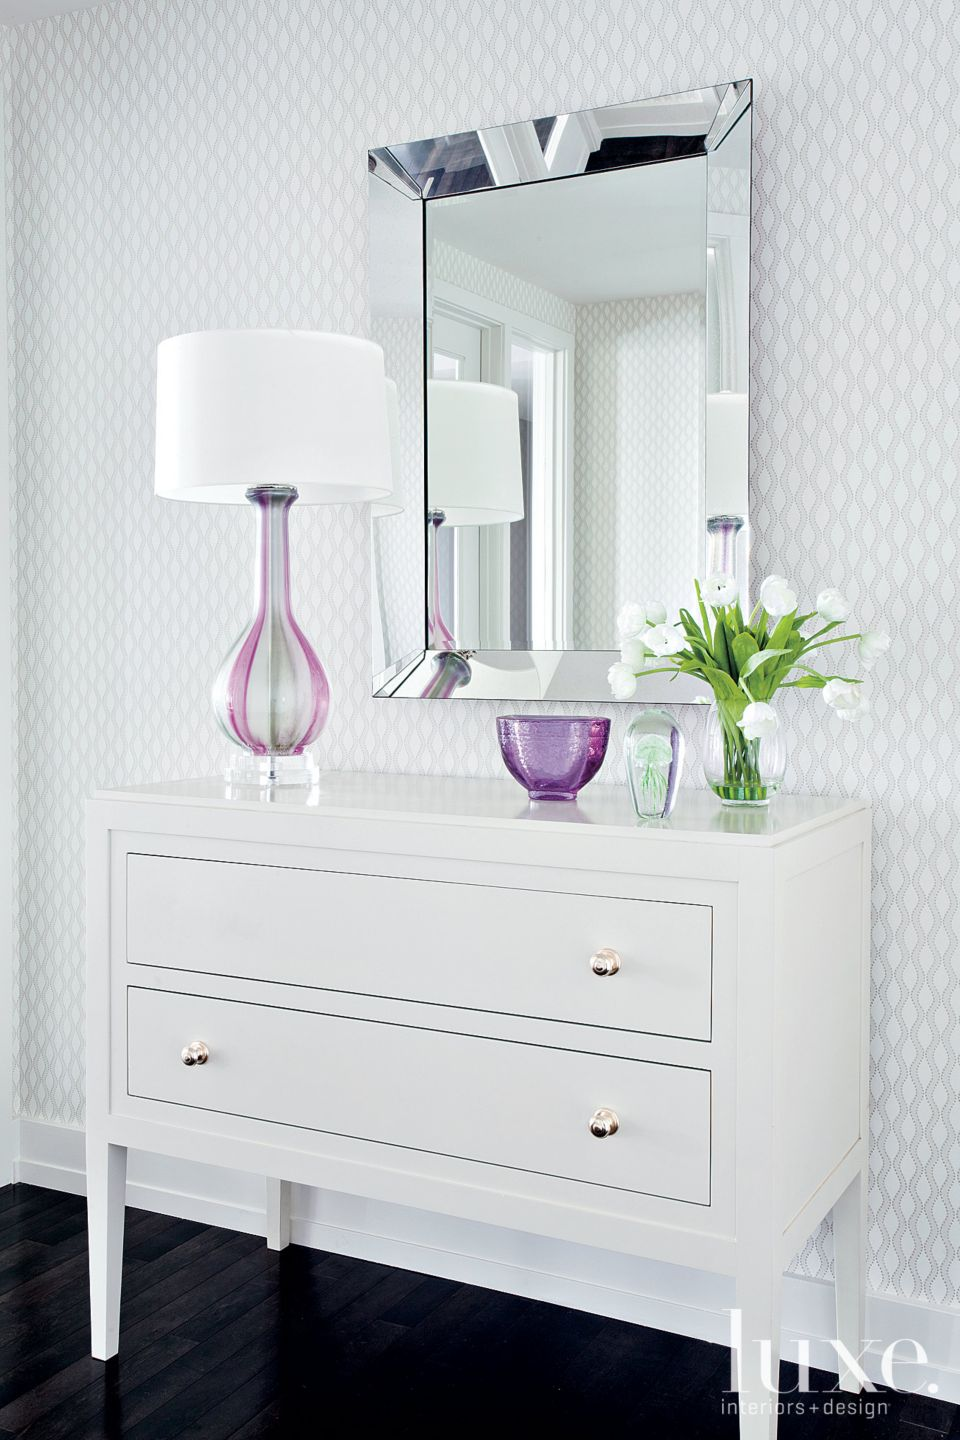 Contemporary White Entry Hall Vignette with White Chest